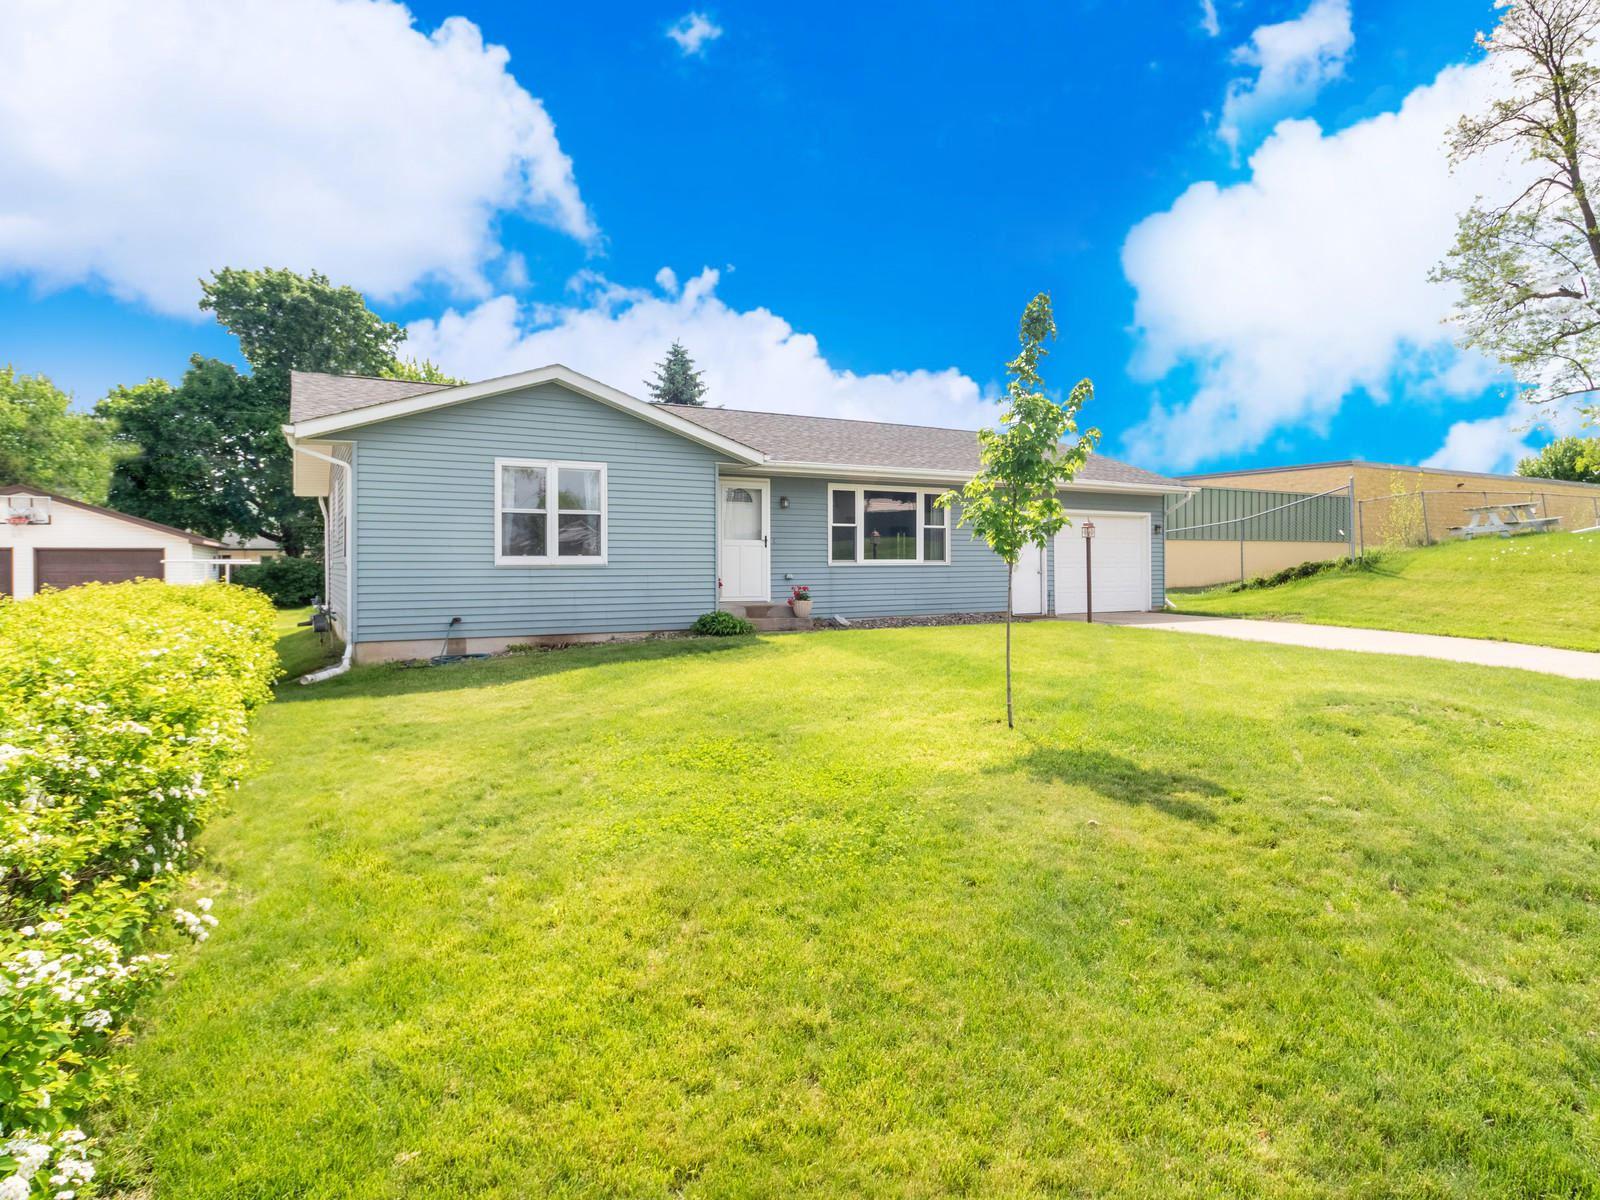 300 Larch Ave, Onalaska, WI 54650 - MLS#: 1690870